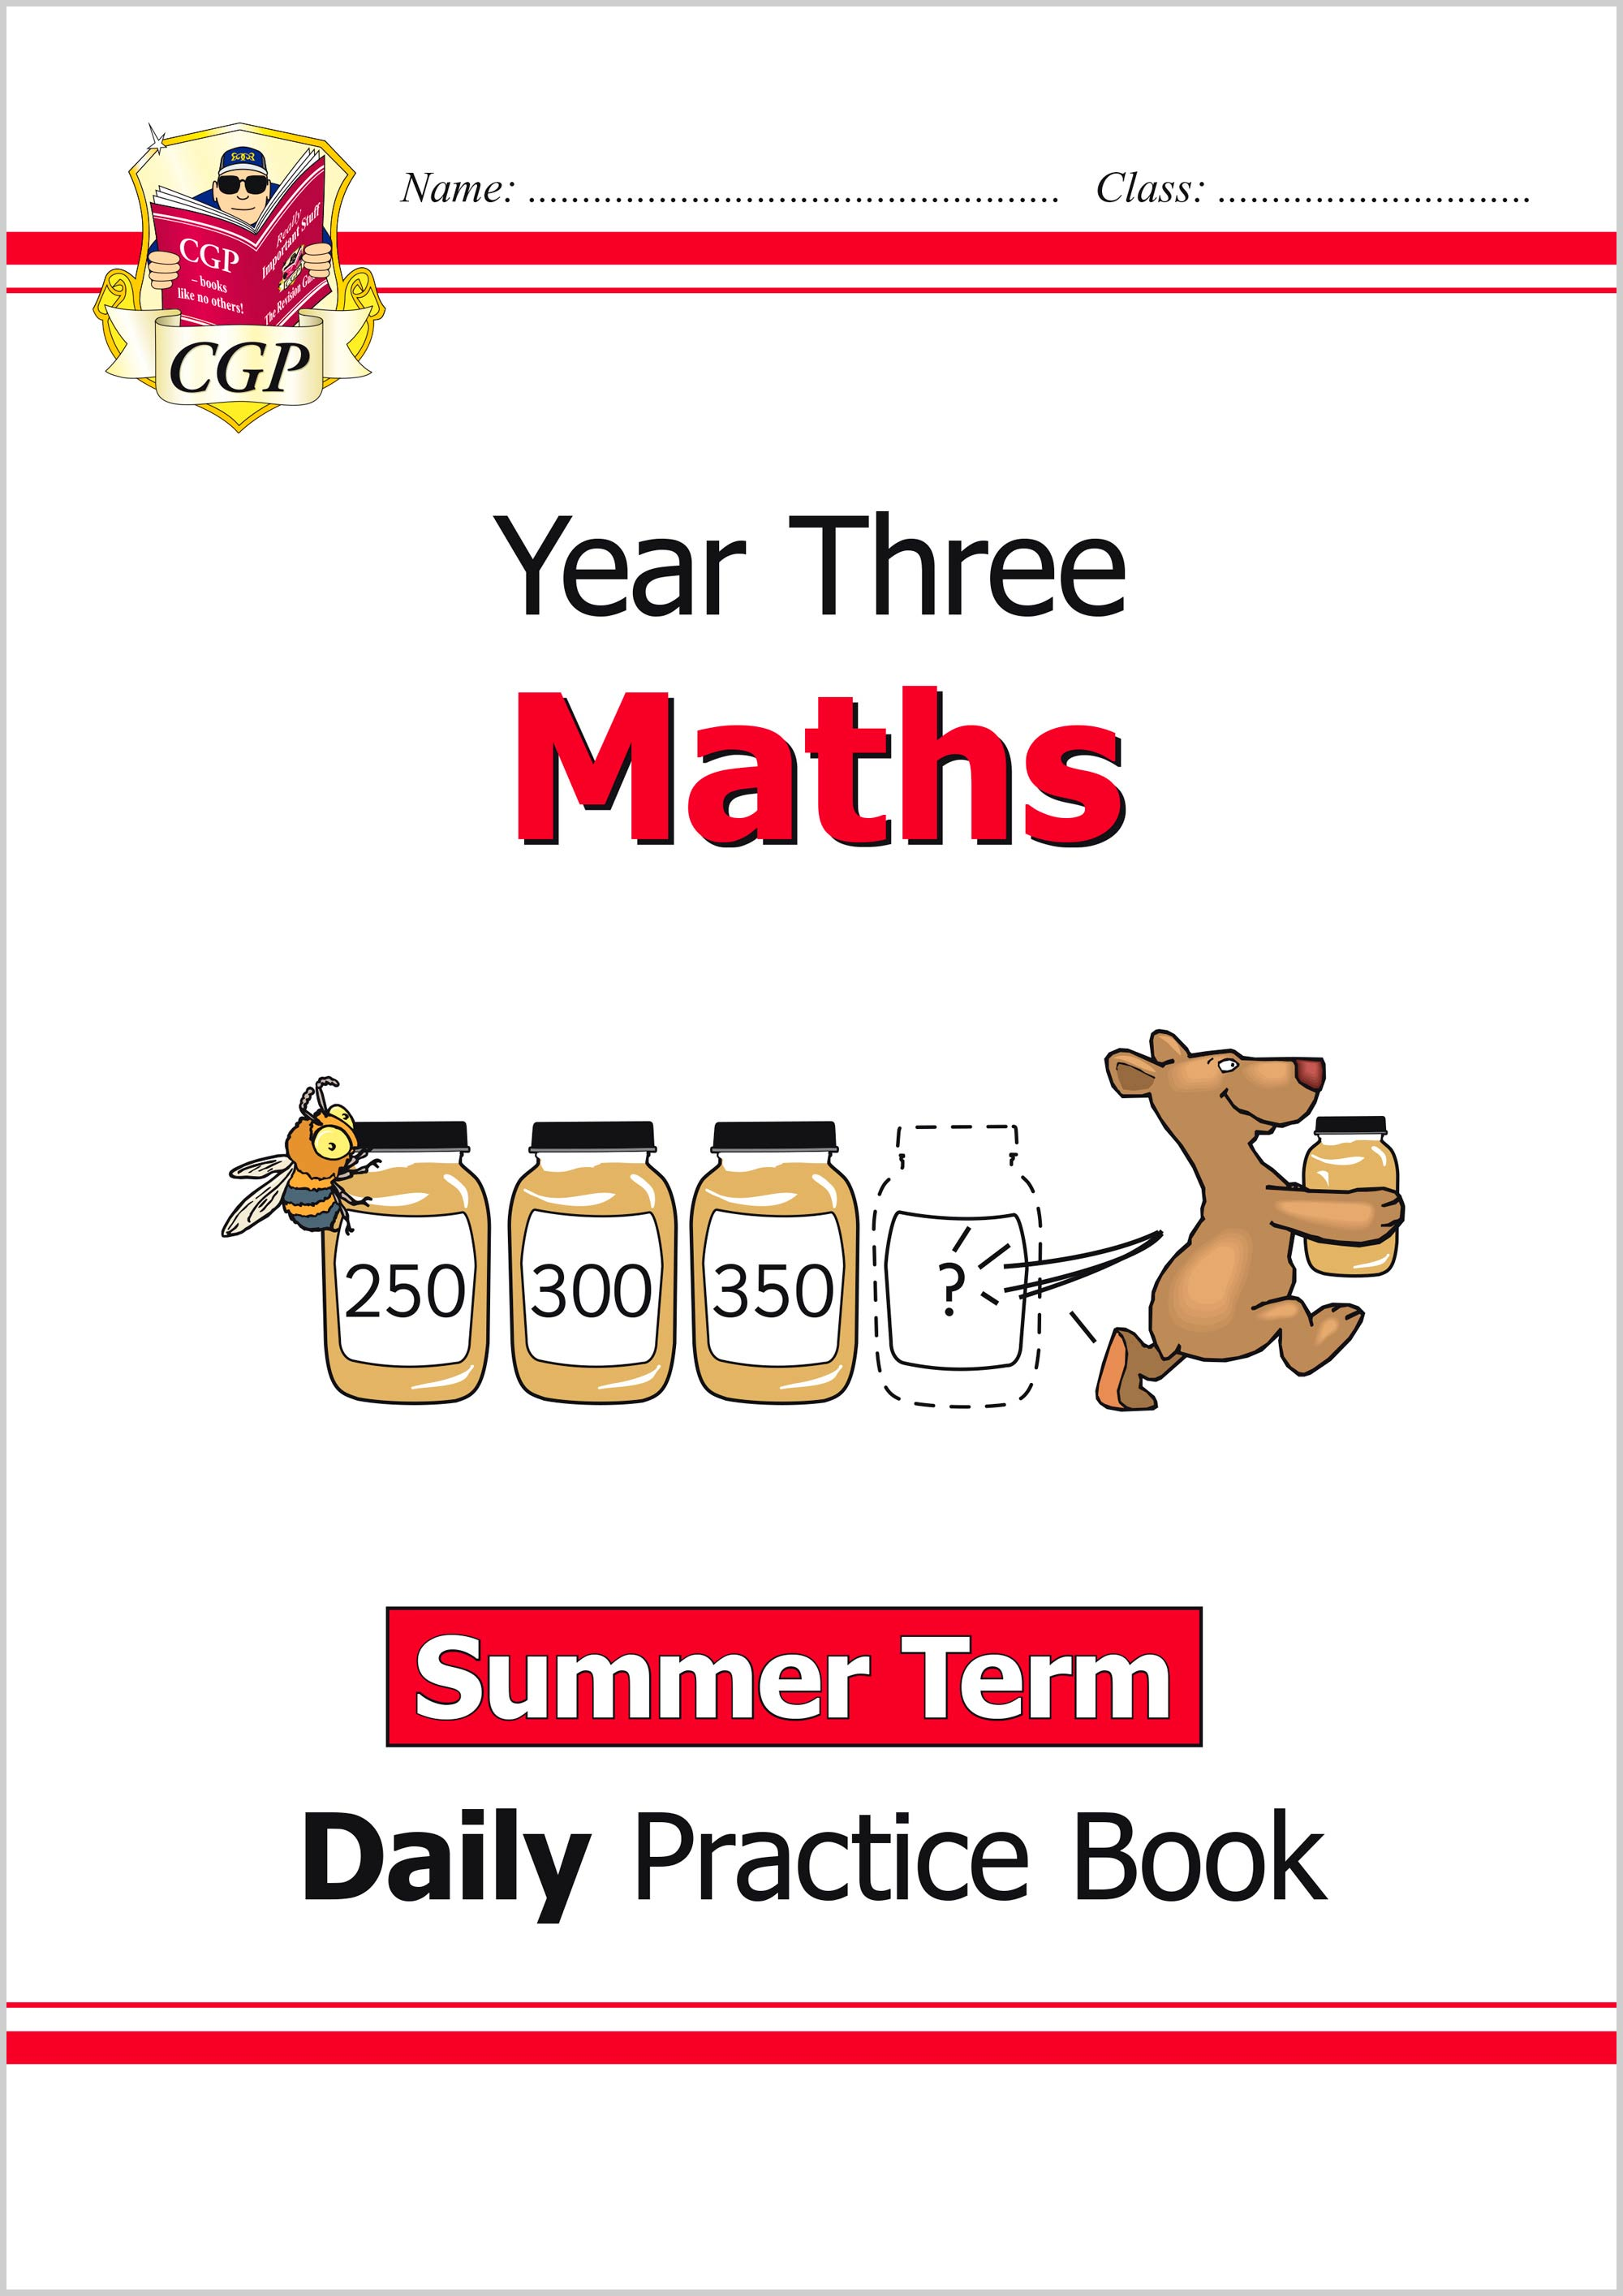 M3WSU21 - New KS2 Maths Daily Practice Book: Year 3 - Summer Term